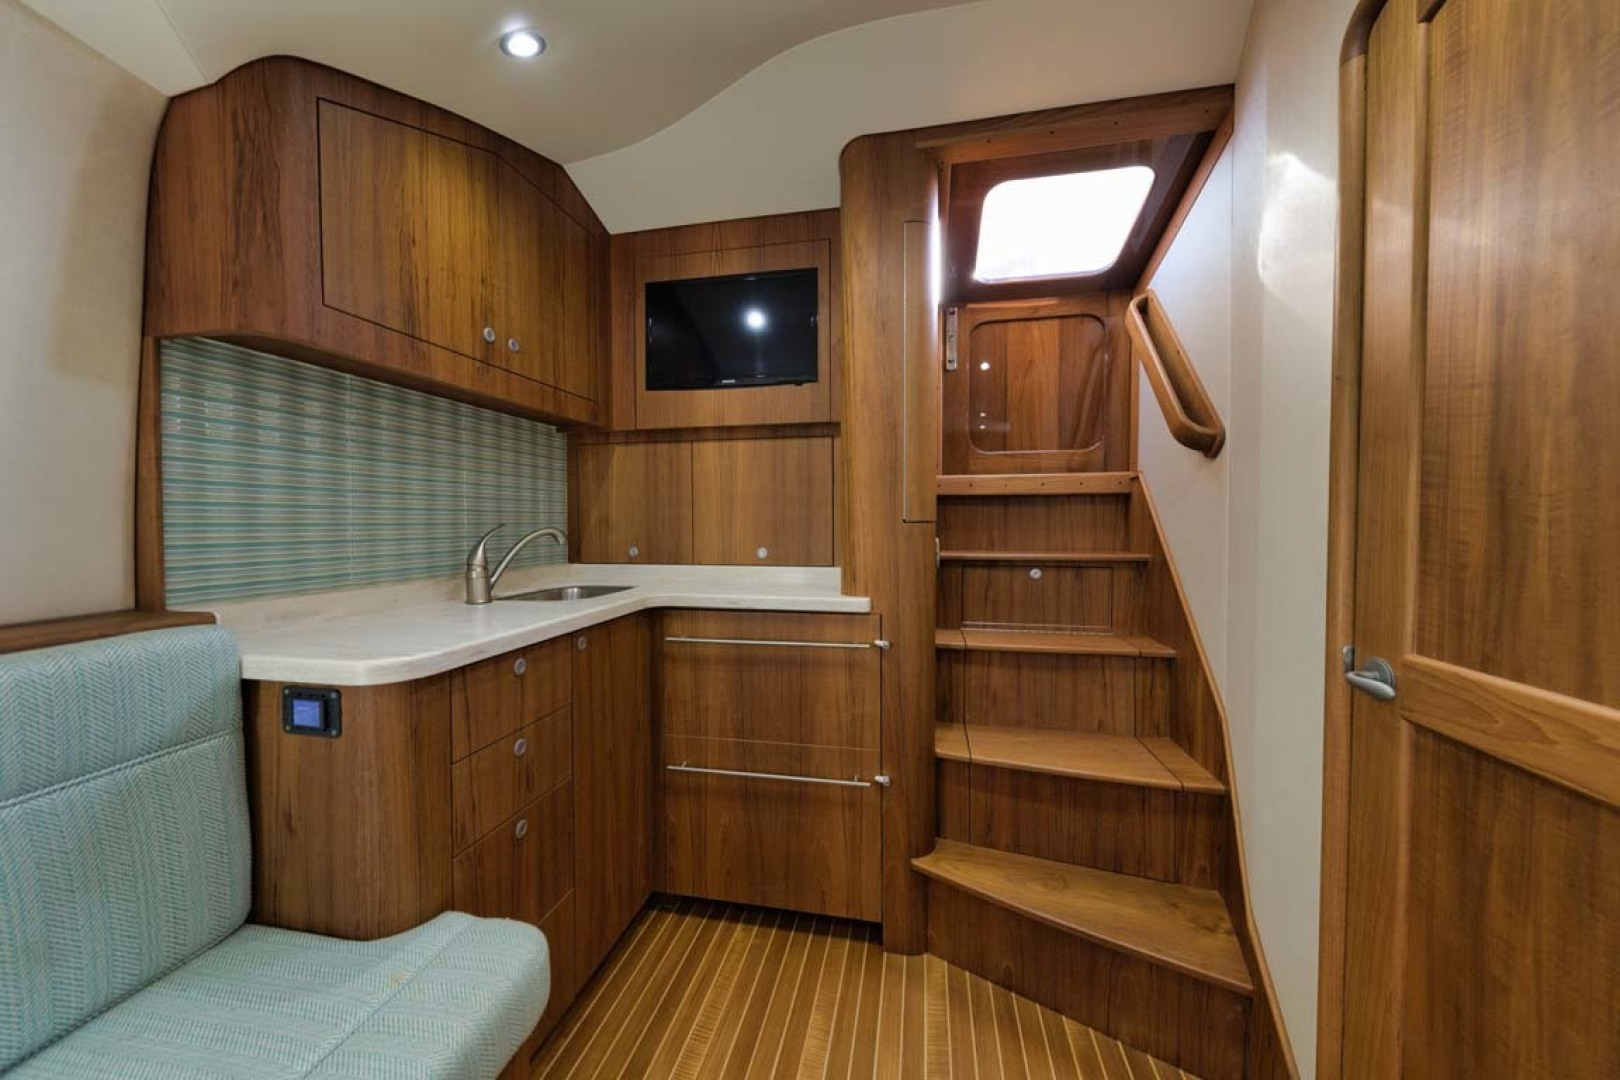 Winter Custom Yachts-46 Walkaround 2019-Family Circus Stuart-Florida-United States-Galley with Sub Zero Refrigerated Drawers and Microwave-1563751 | Thumbnail